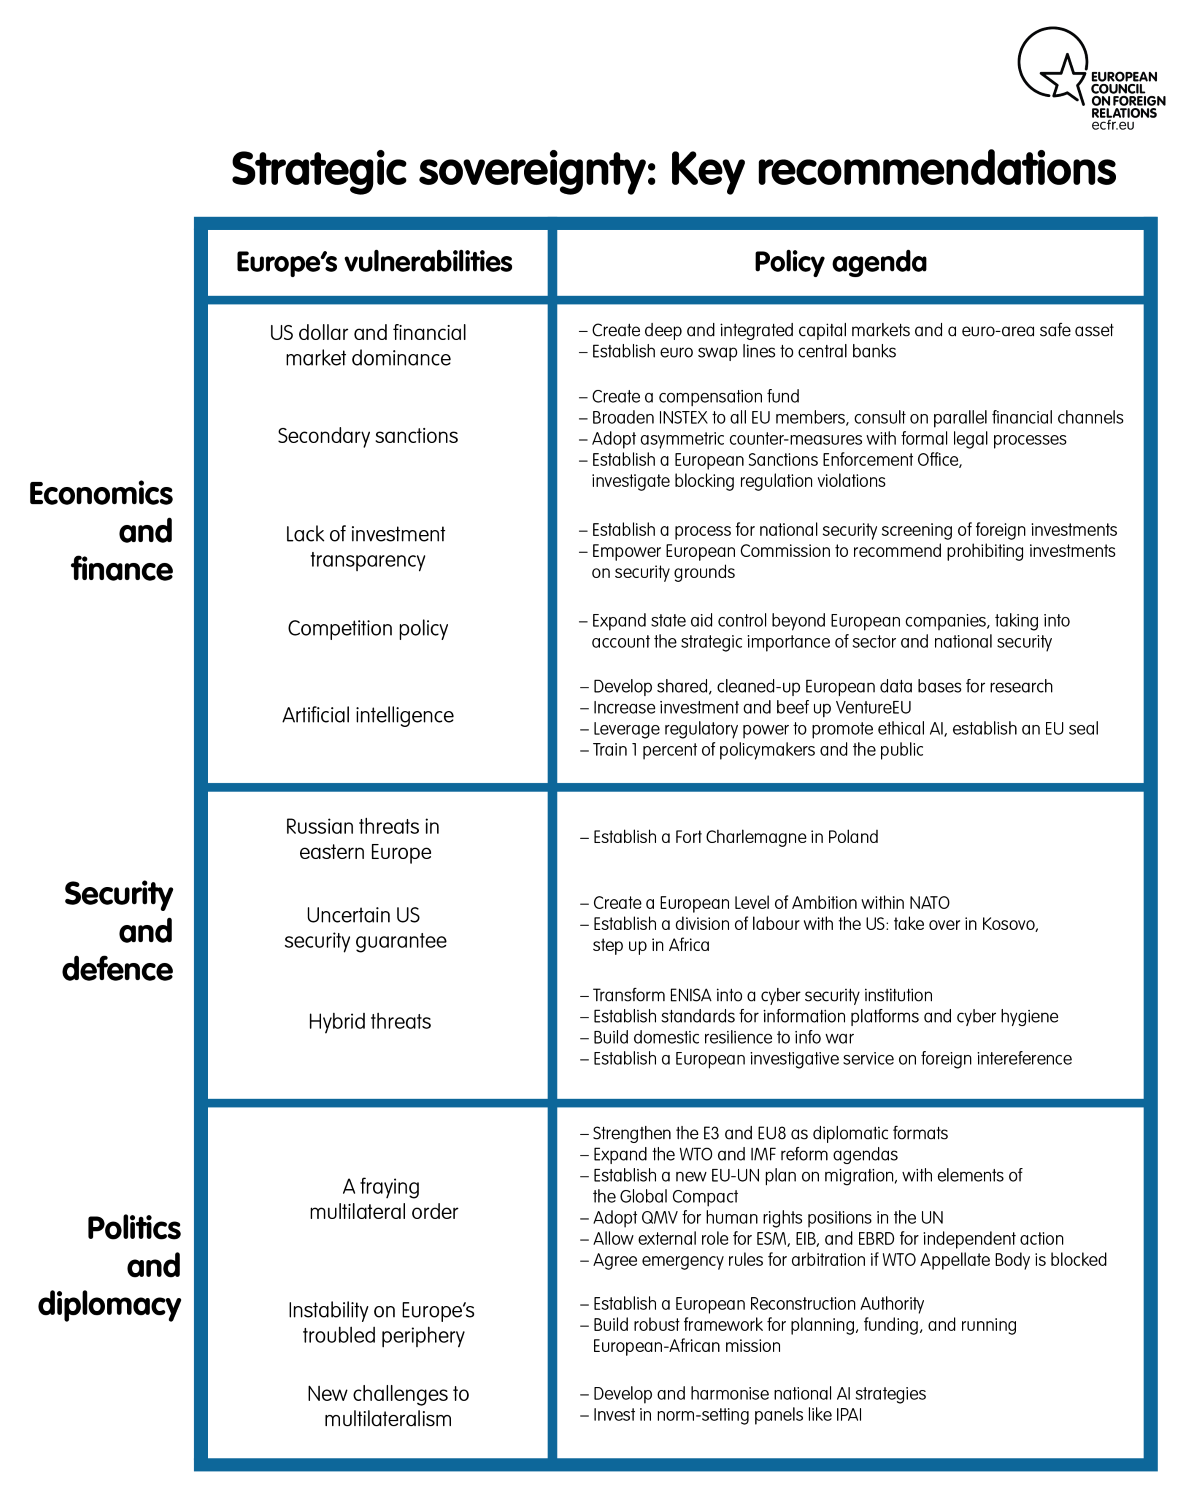 Strategic sovereignty: key recommendations